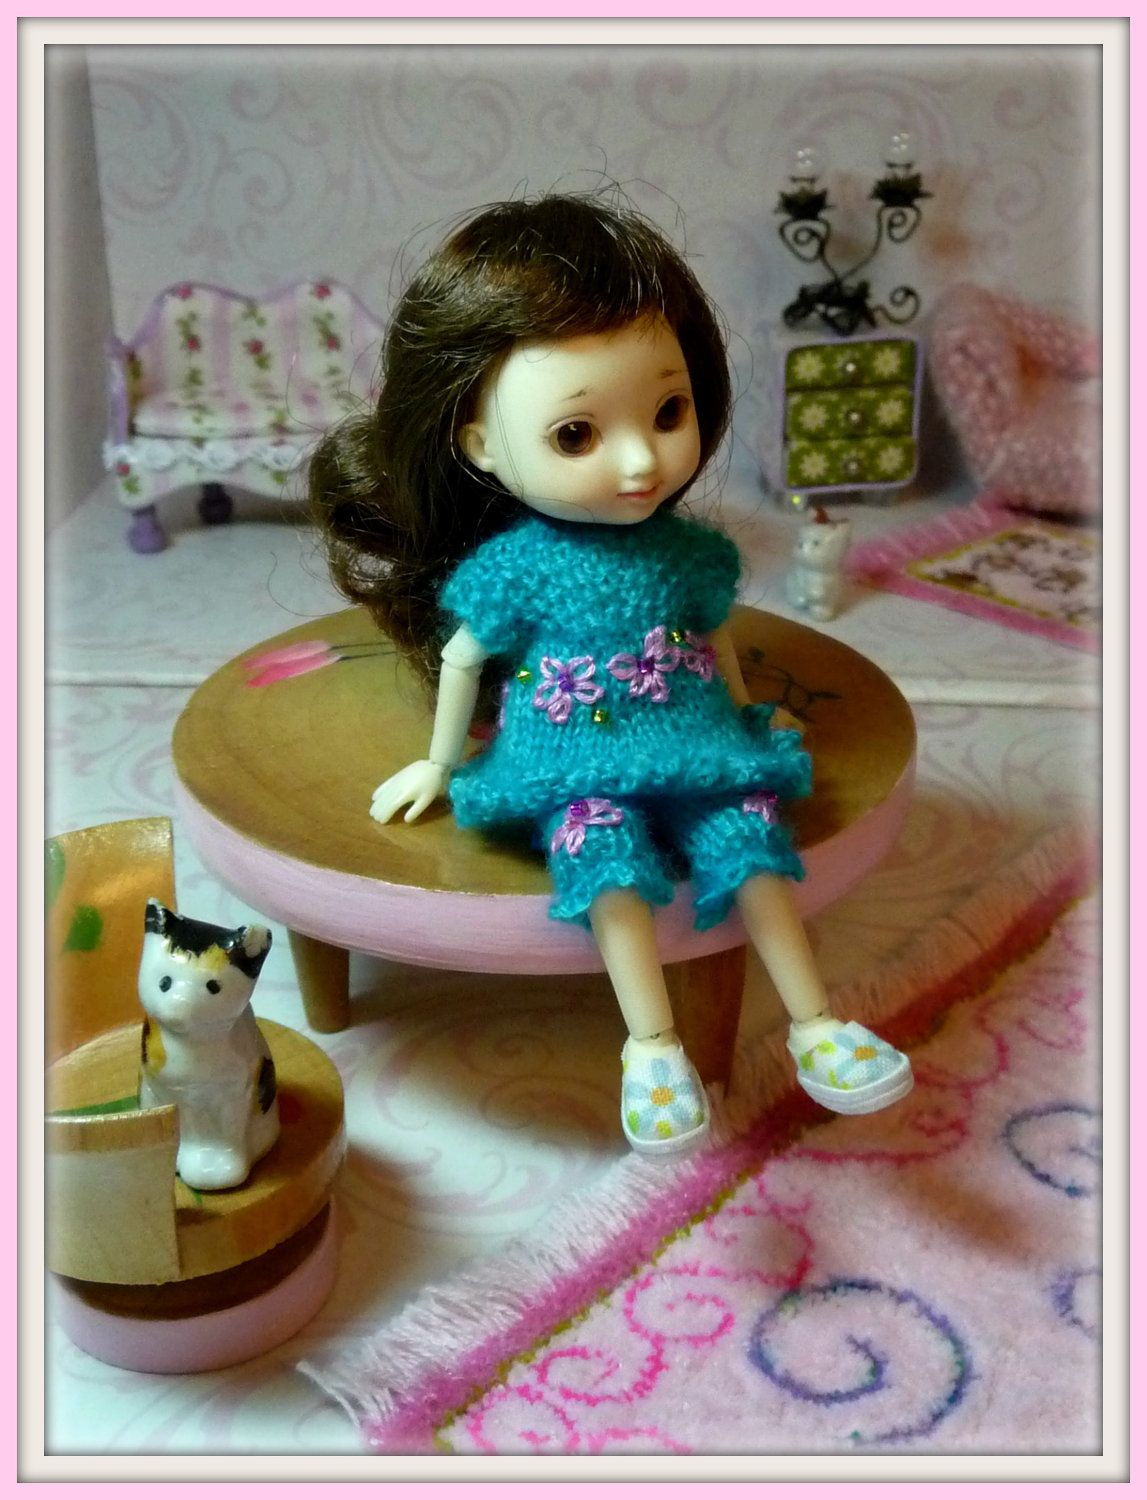 teeny tiny doll pastel multi color floral shoes for amelia thimble rh pinterest com